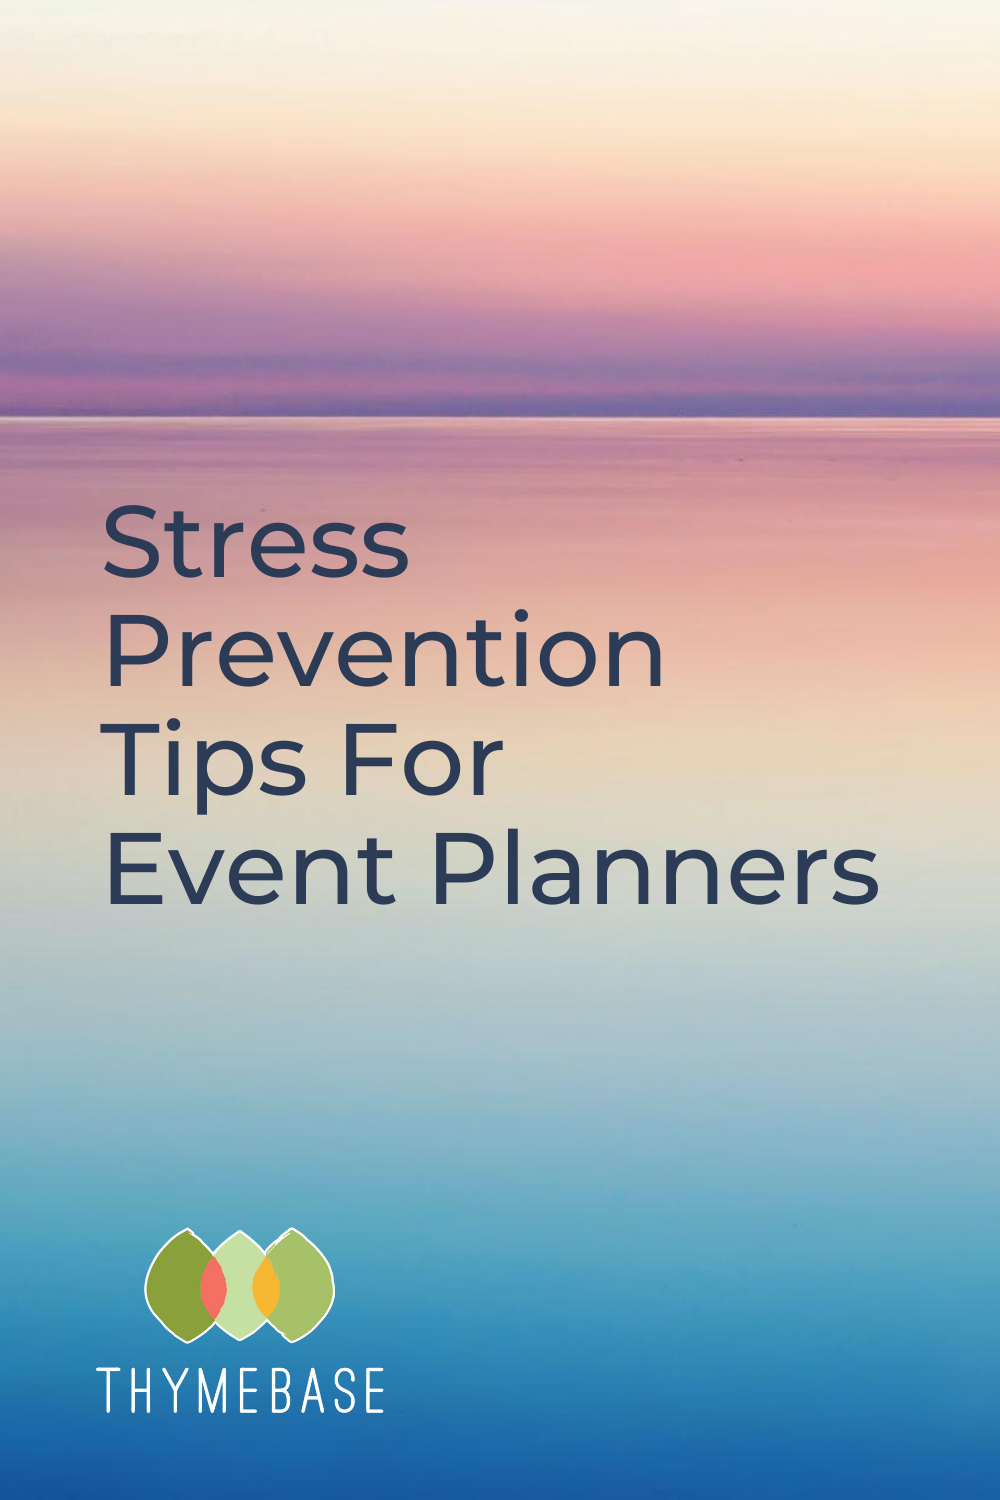 Event planning is a stressful job. It really is. And that's why some manageable stress prevention tips can make all the difference.  . . . #eventtech #eventtechnology #eventprofs #event #eventdesign #eventmanagement #eventplanner #eventplanners #eventplanning #events #meetings #partyplanner #weddingplanner #corporateevents #thymebase